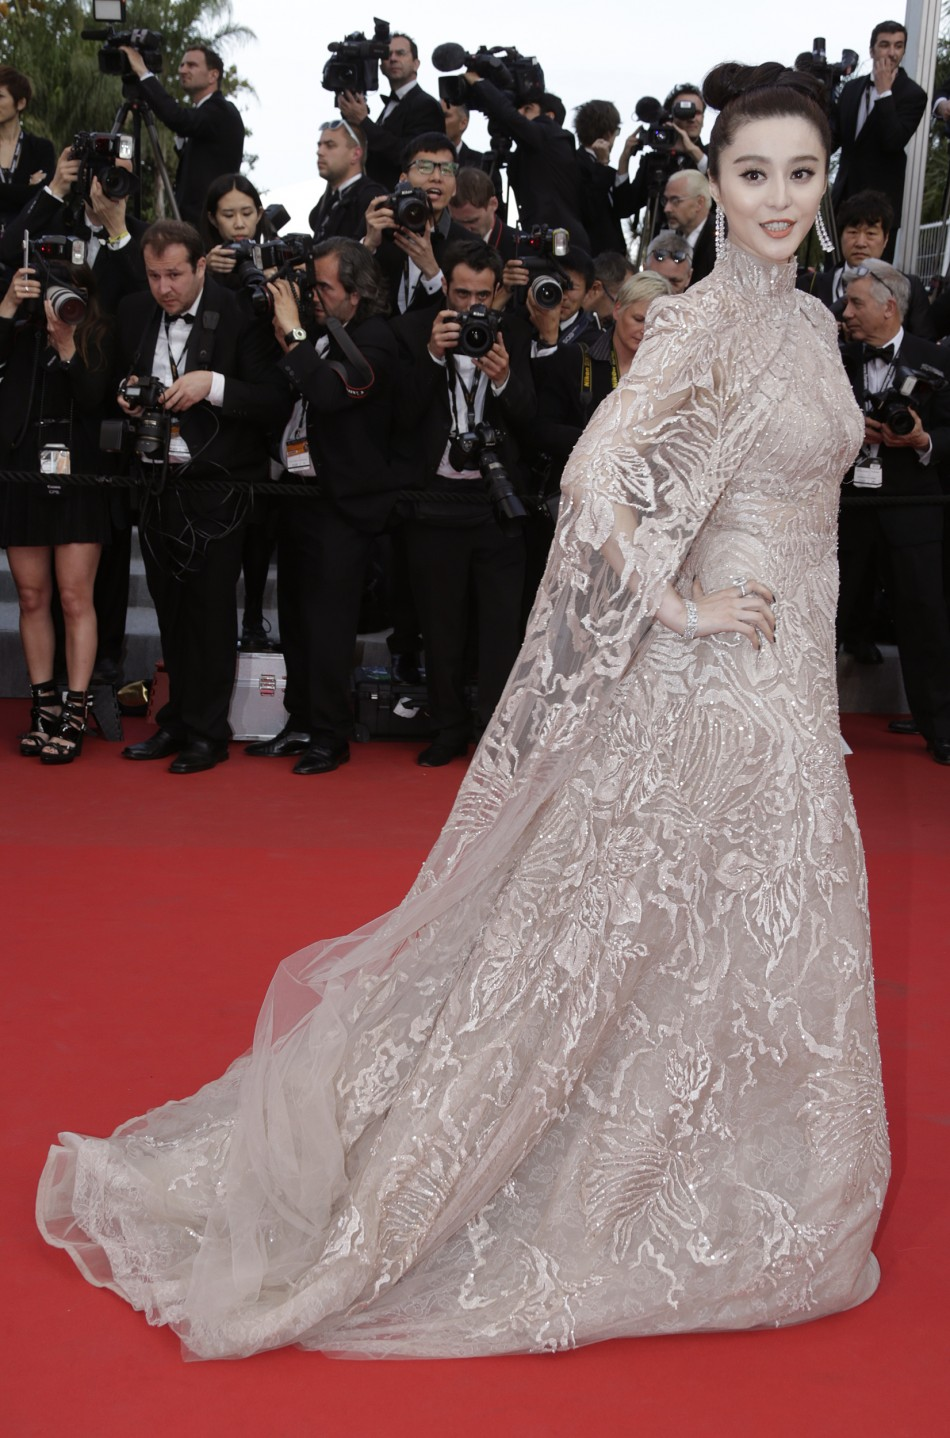 Actress Fan Bing Bing arrives on the red carpet for the screeing of the film De rouille et d'os at the 65th Cannes Film Festival